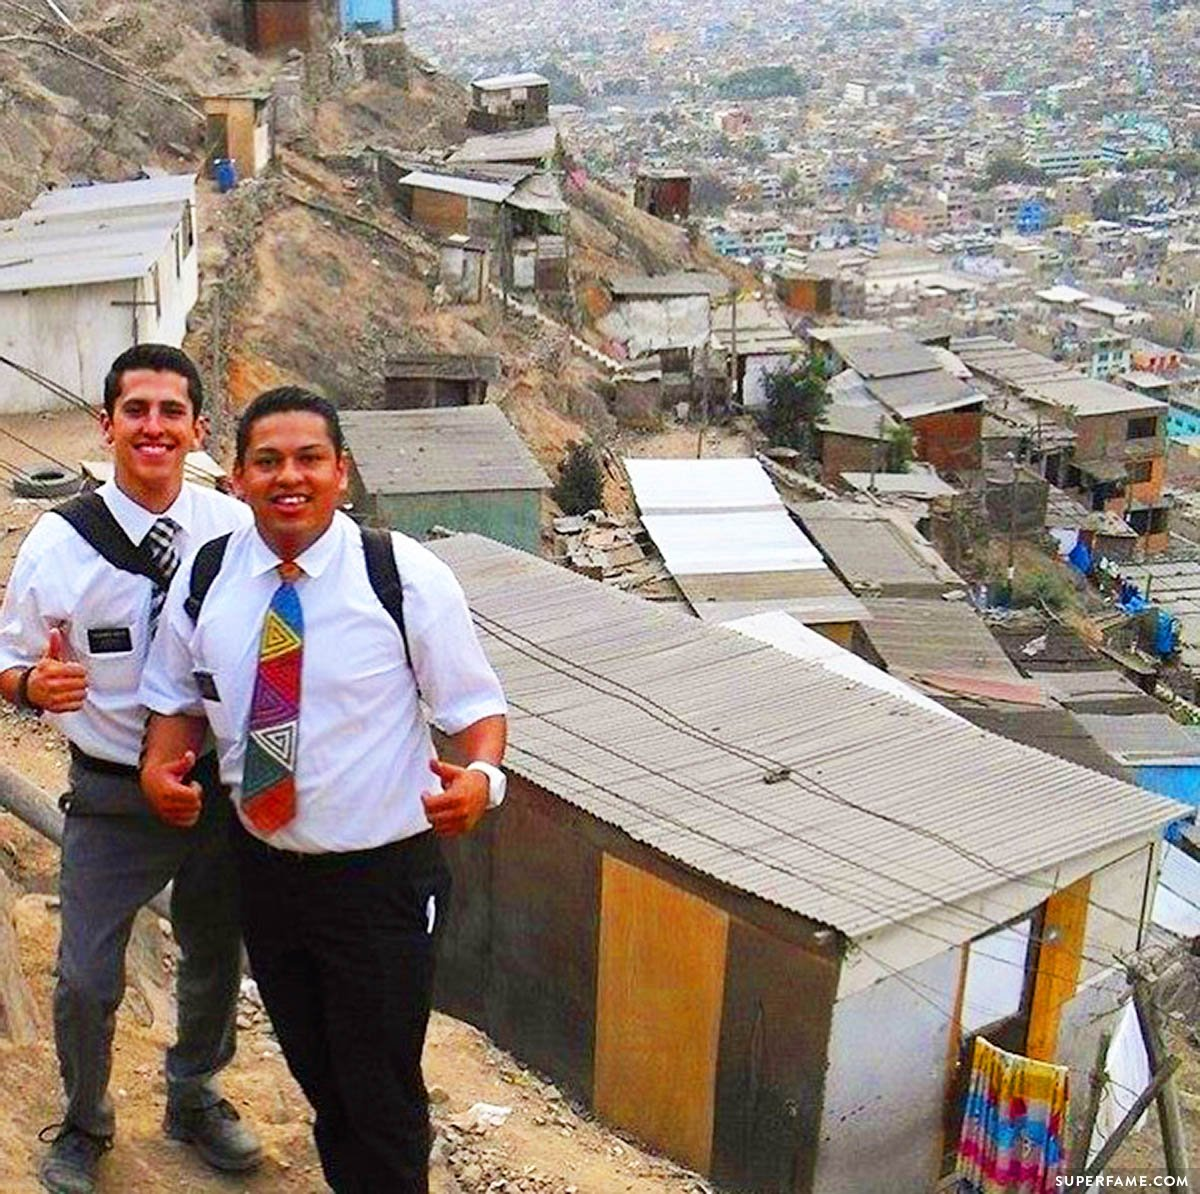 Where Chris lived during his Peru mission.